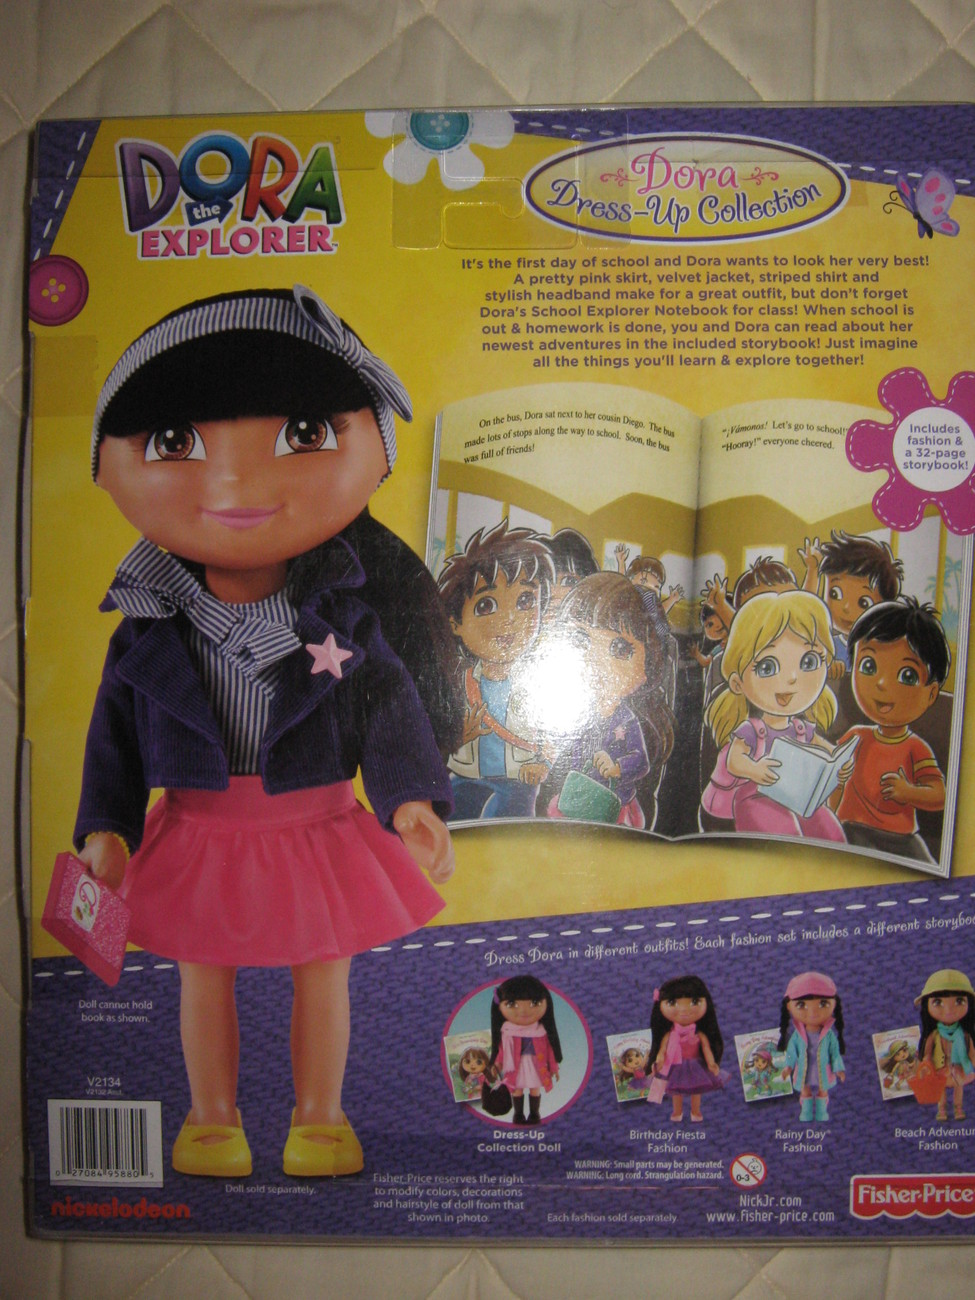 Fisher Price Dora the Explorer 'School Time' collection